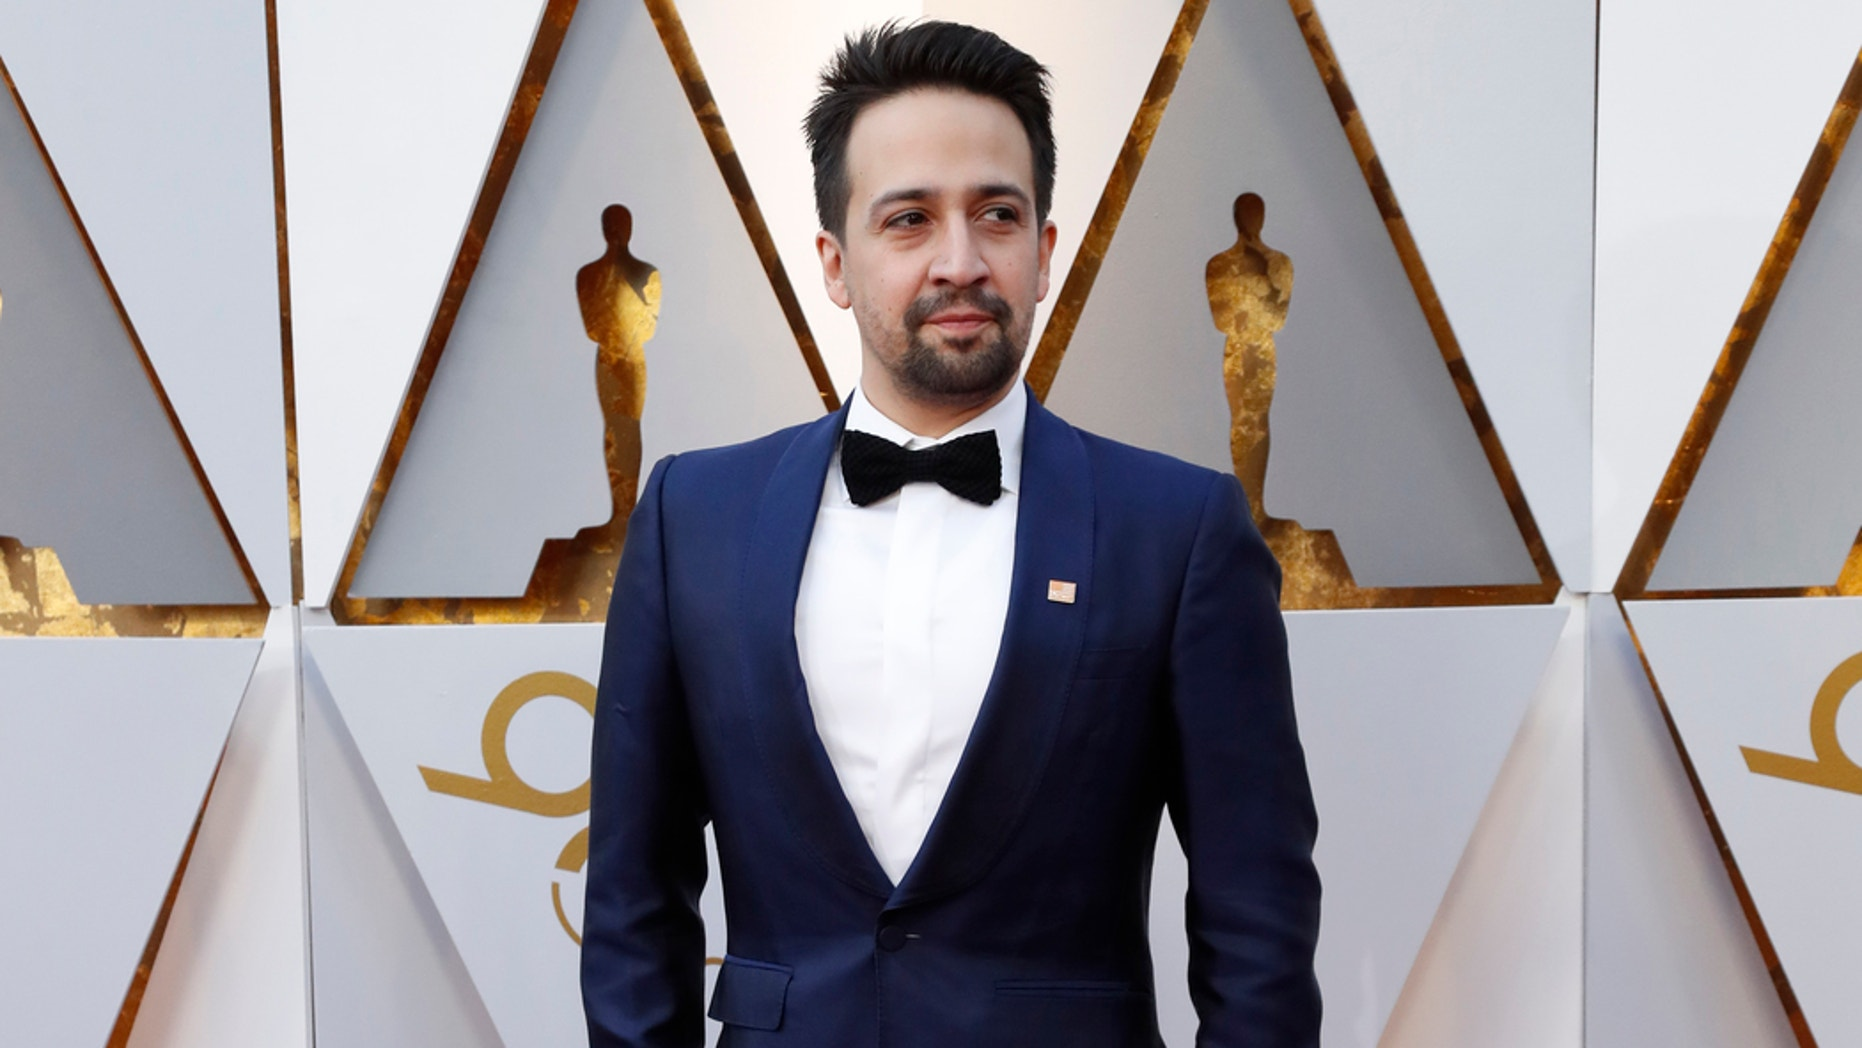 Lin Manuel Miranda sports an orange Everytown pin at the 90th Academy Awards to advocates for stronger gun control.